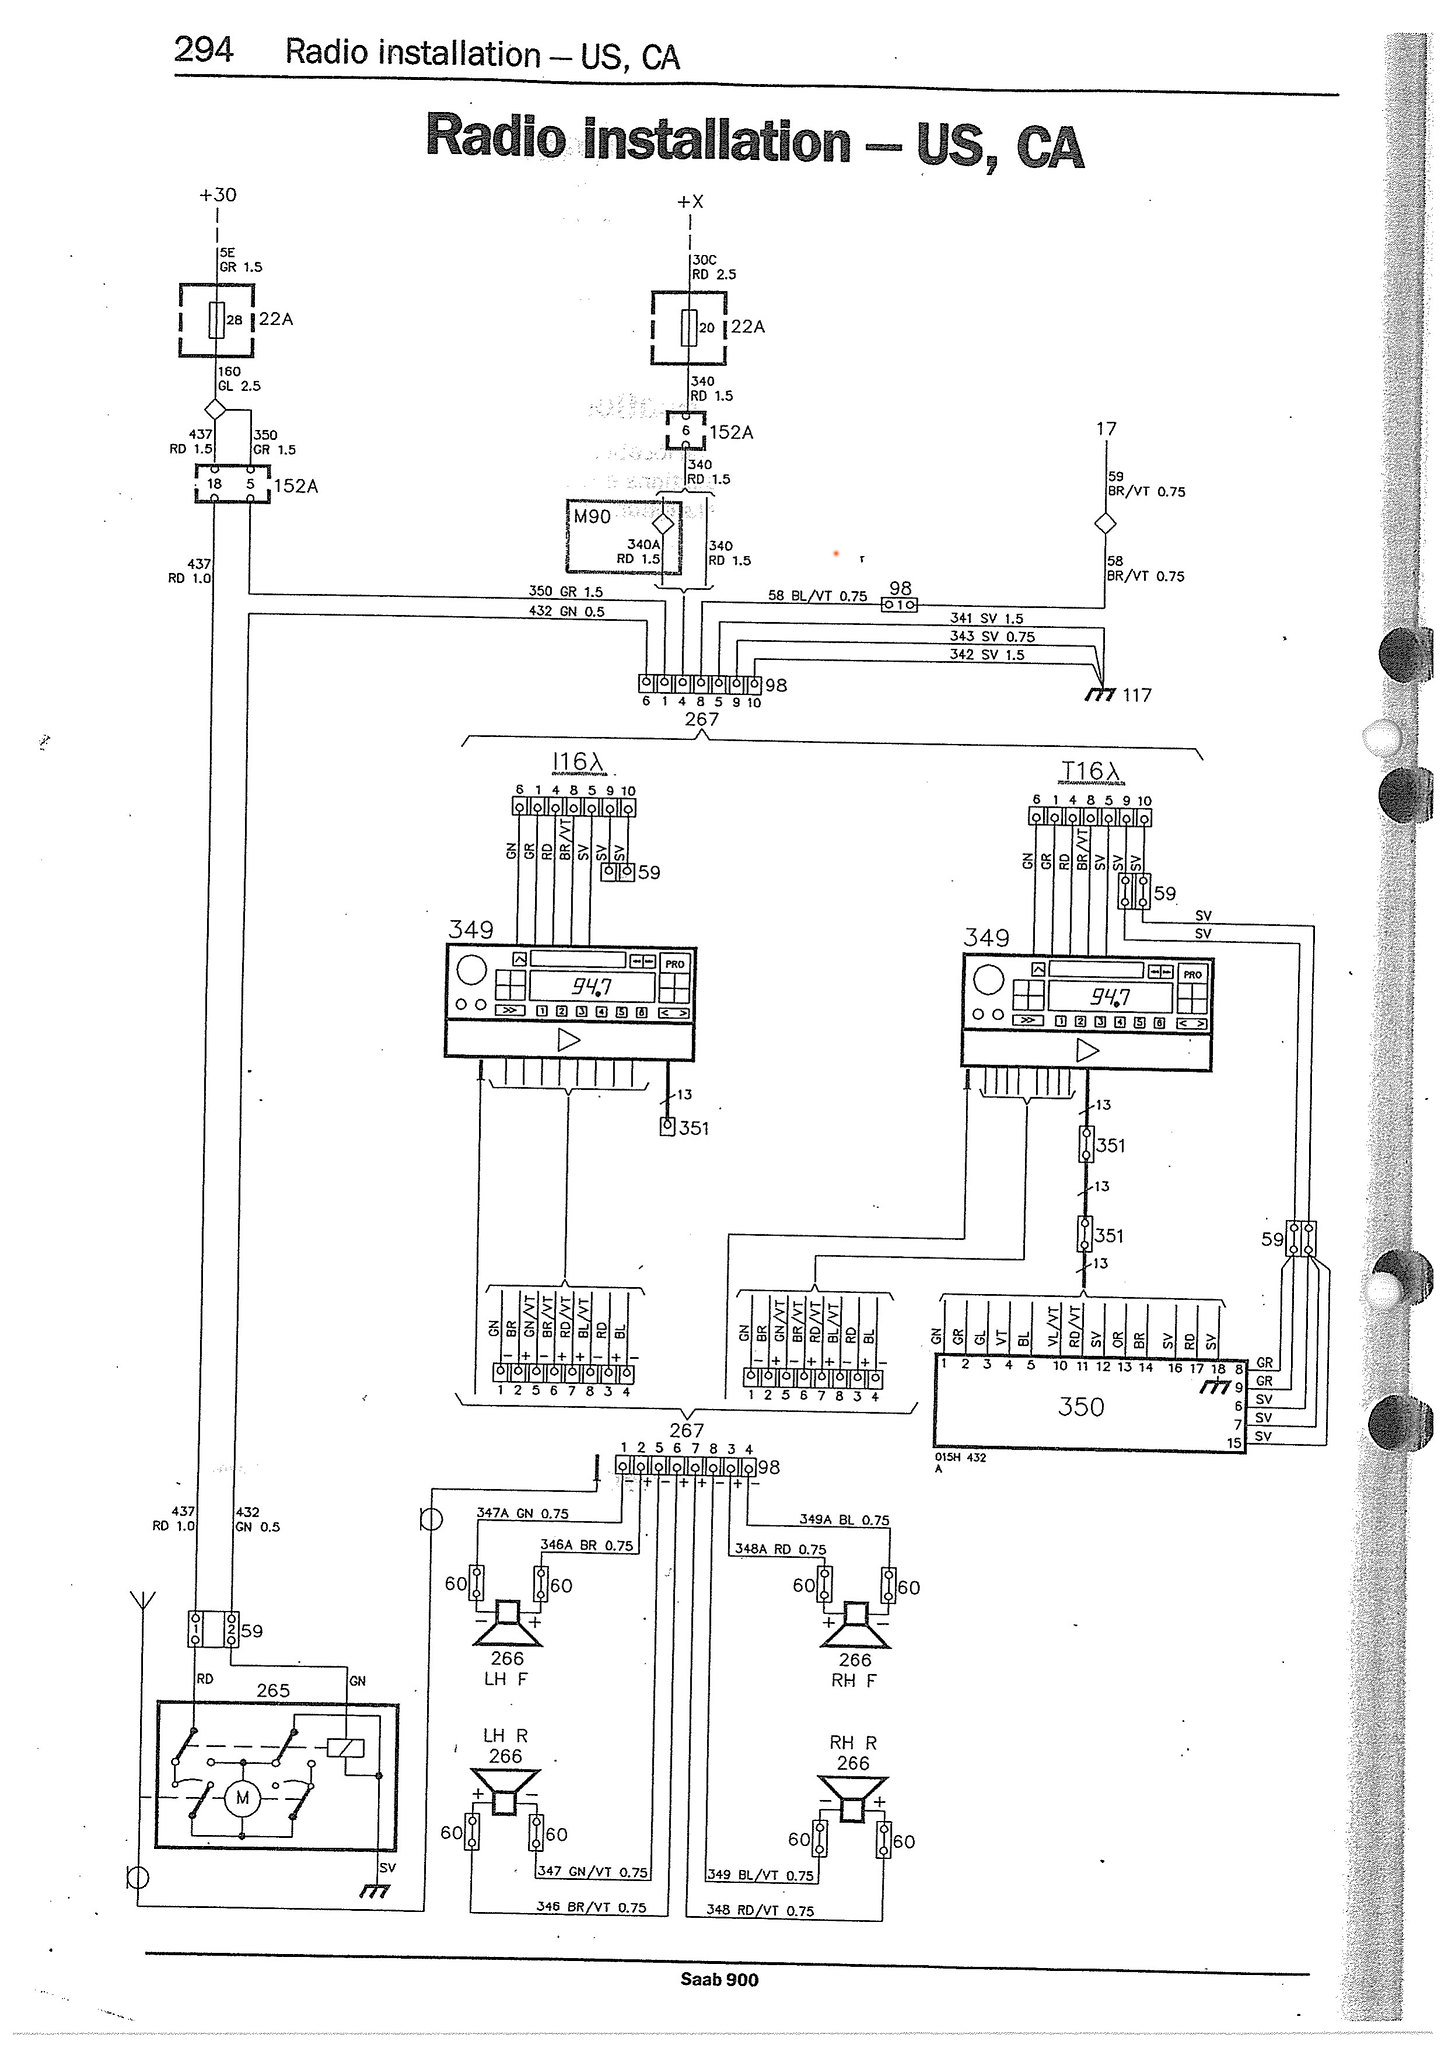 Excellent 1996 Saab Radio Wiring Diagram Wiring Library Wiring 101 Photwellnesstrialsorg